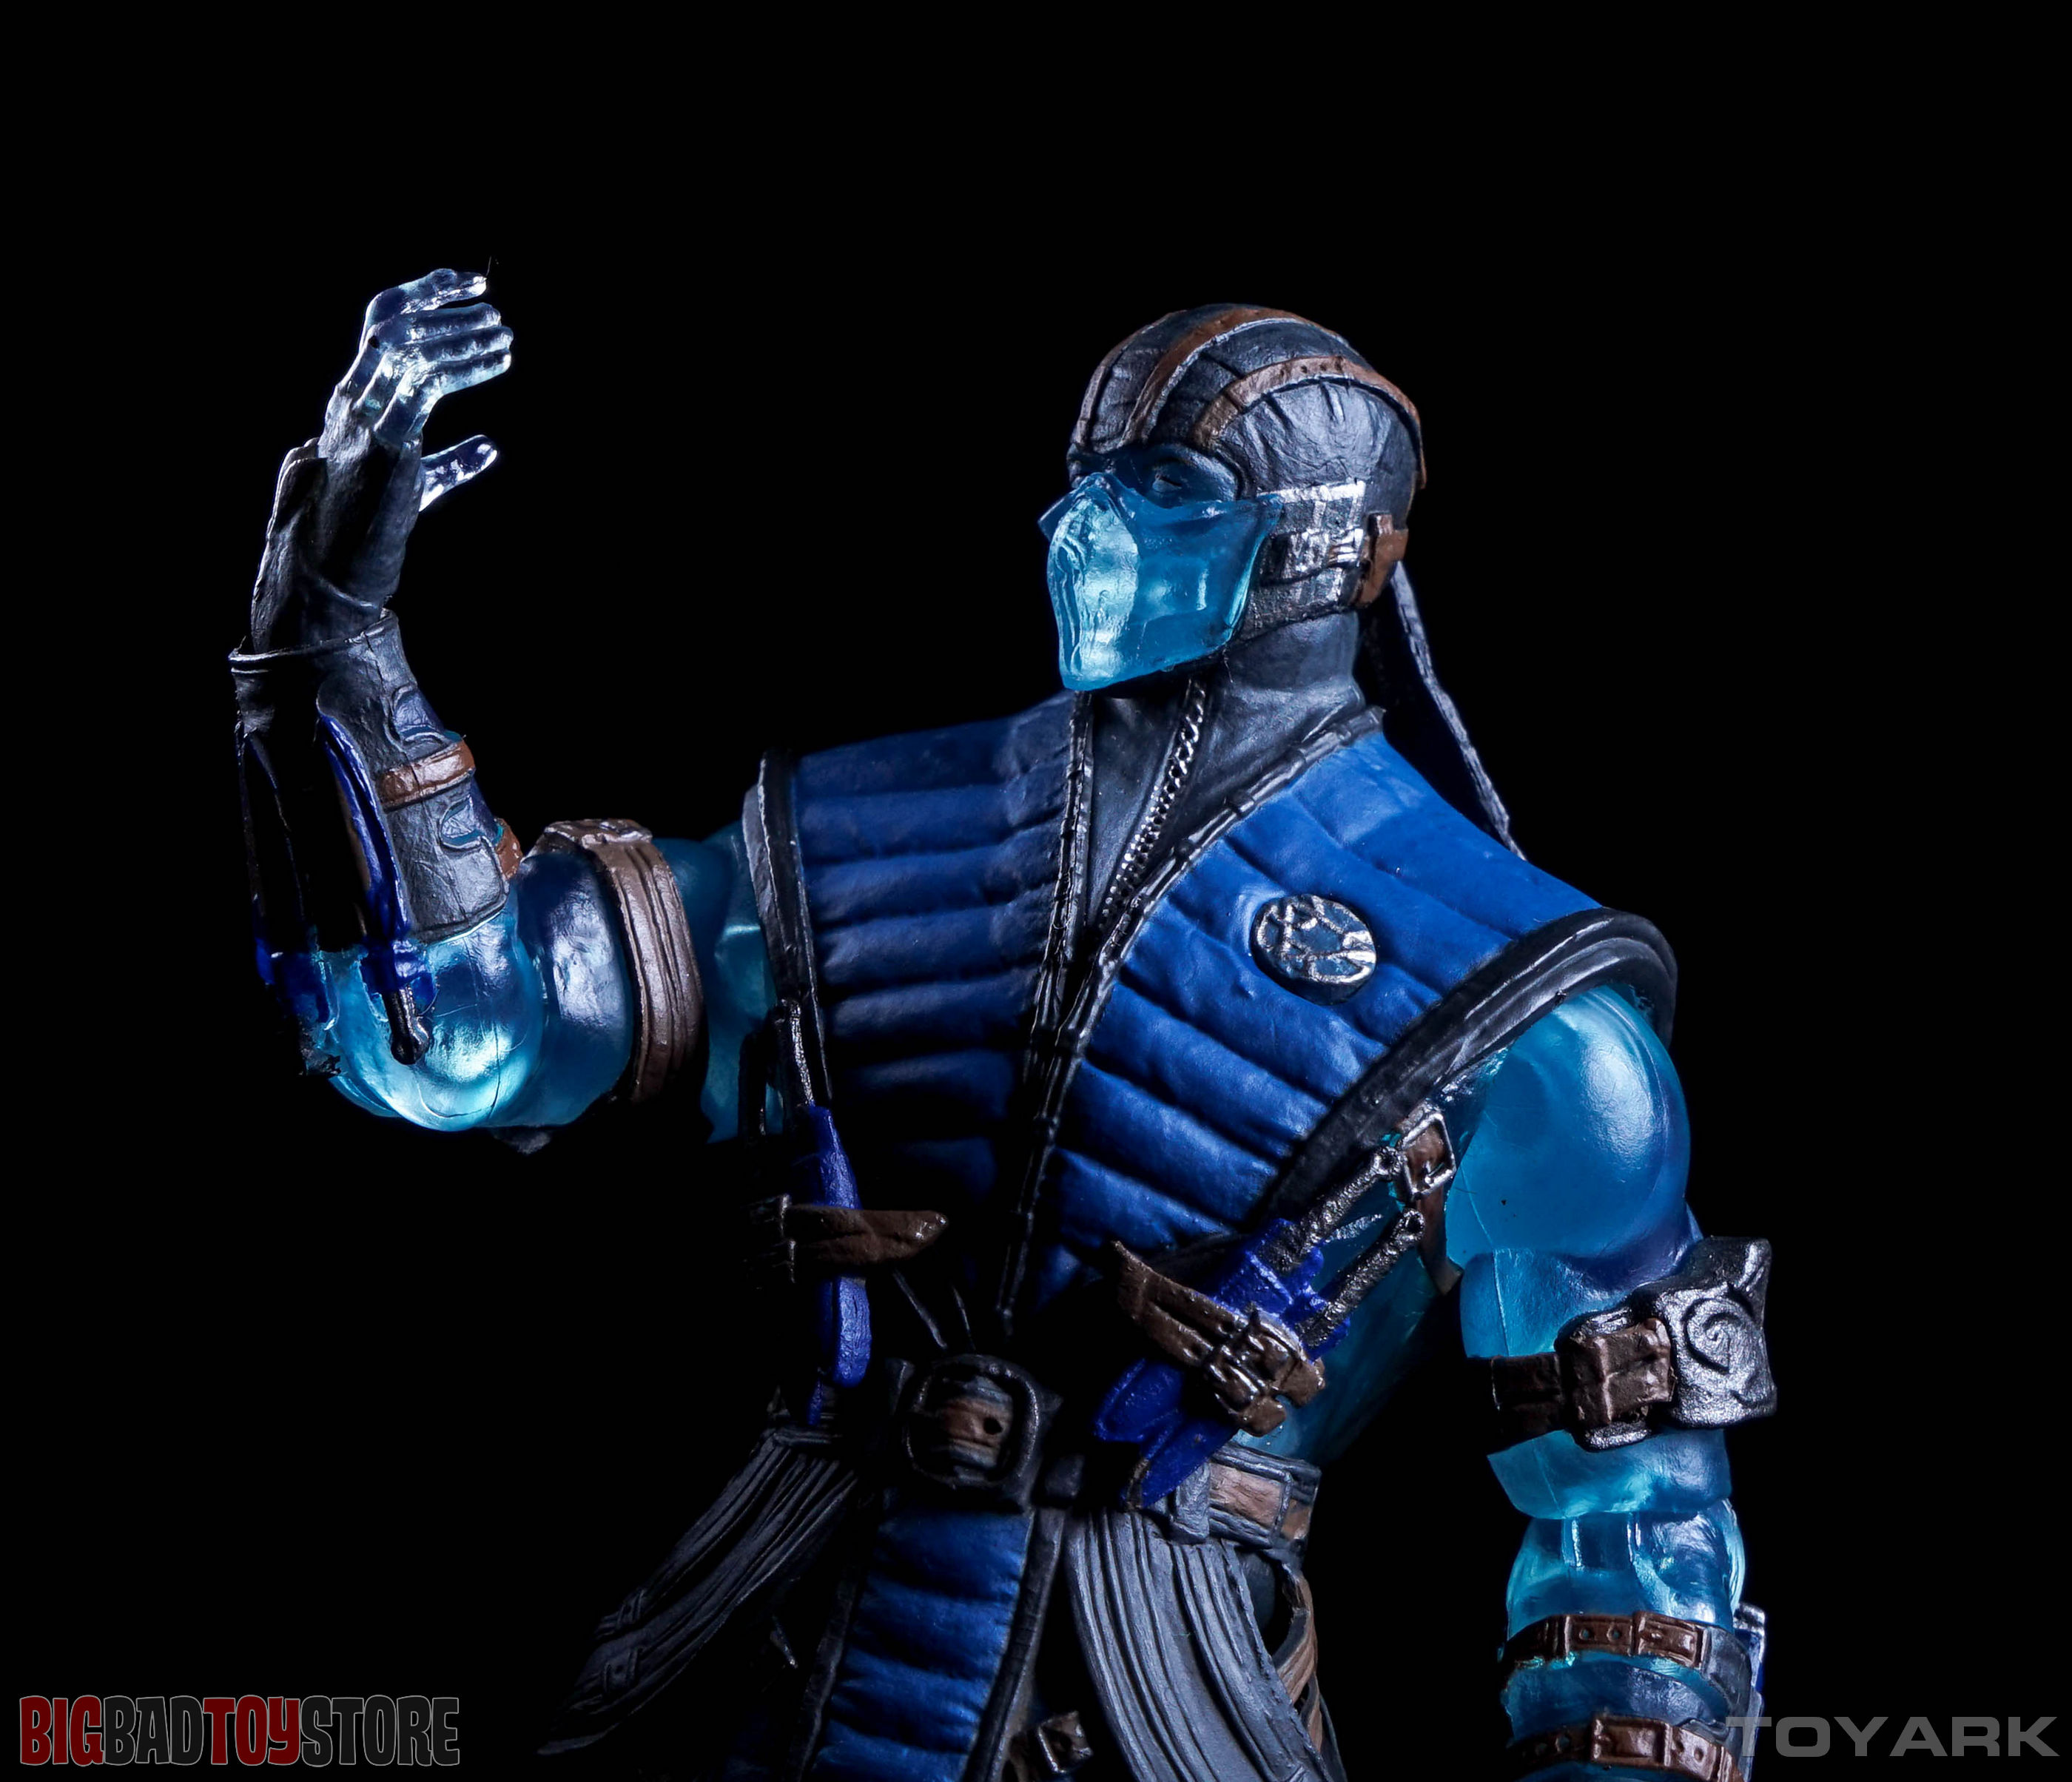 http://news.toyark.com/wp-content/uploads/sites/4/2015/10/Mezco-PX-Mortal-Kombat-X-076.jpg